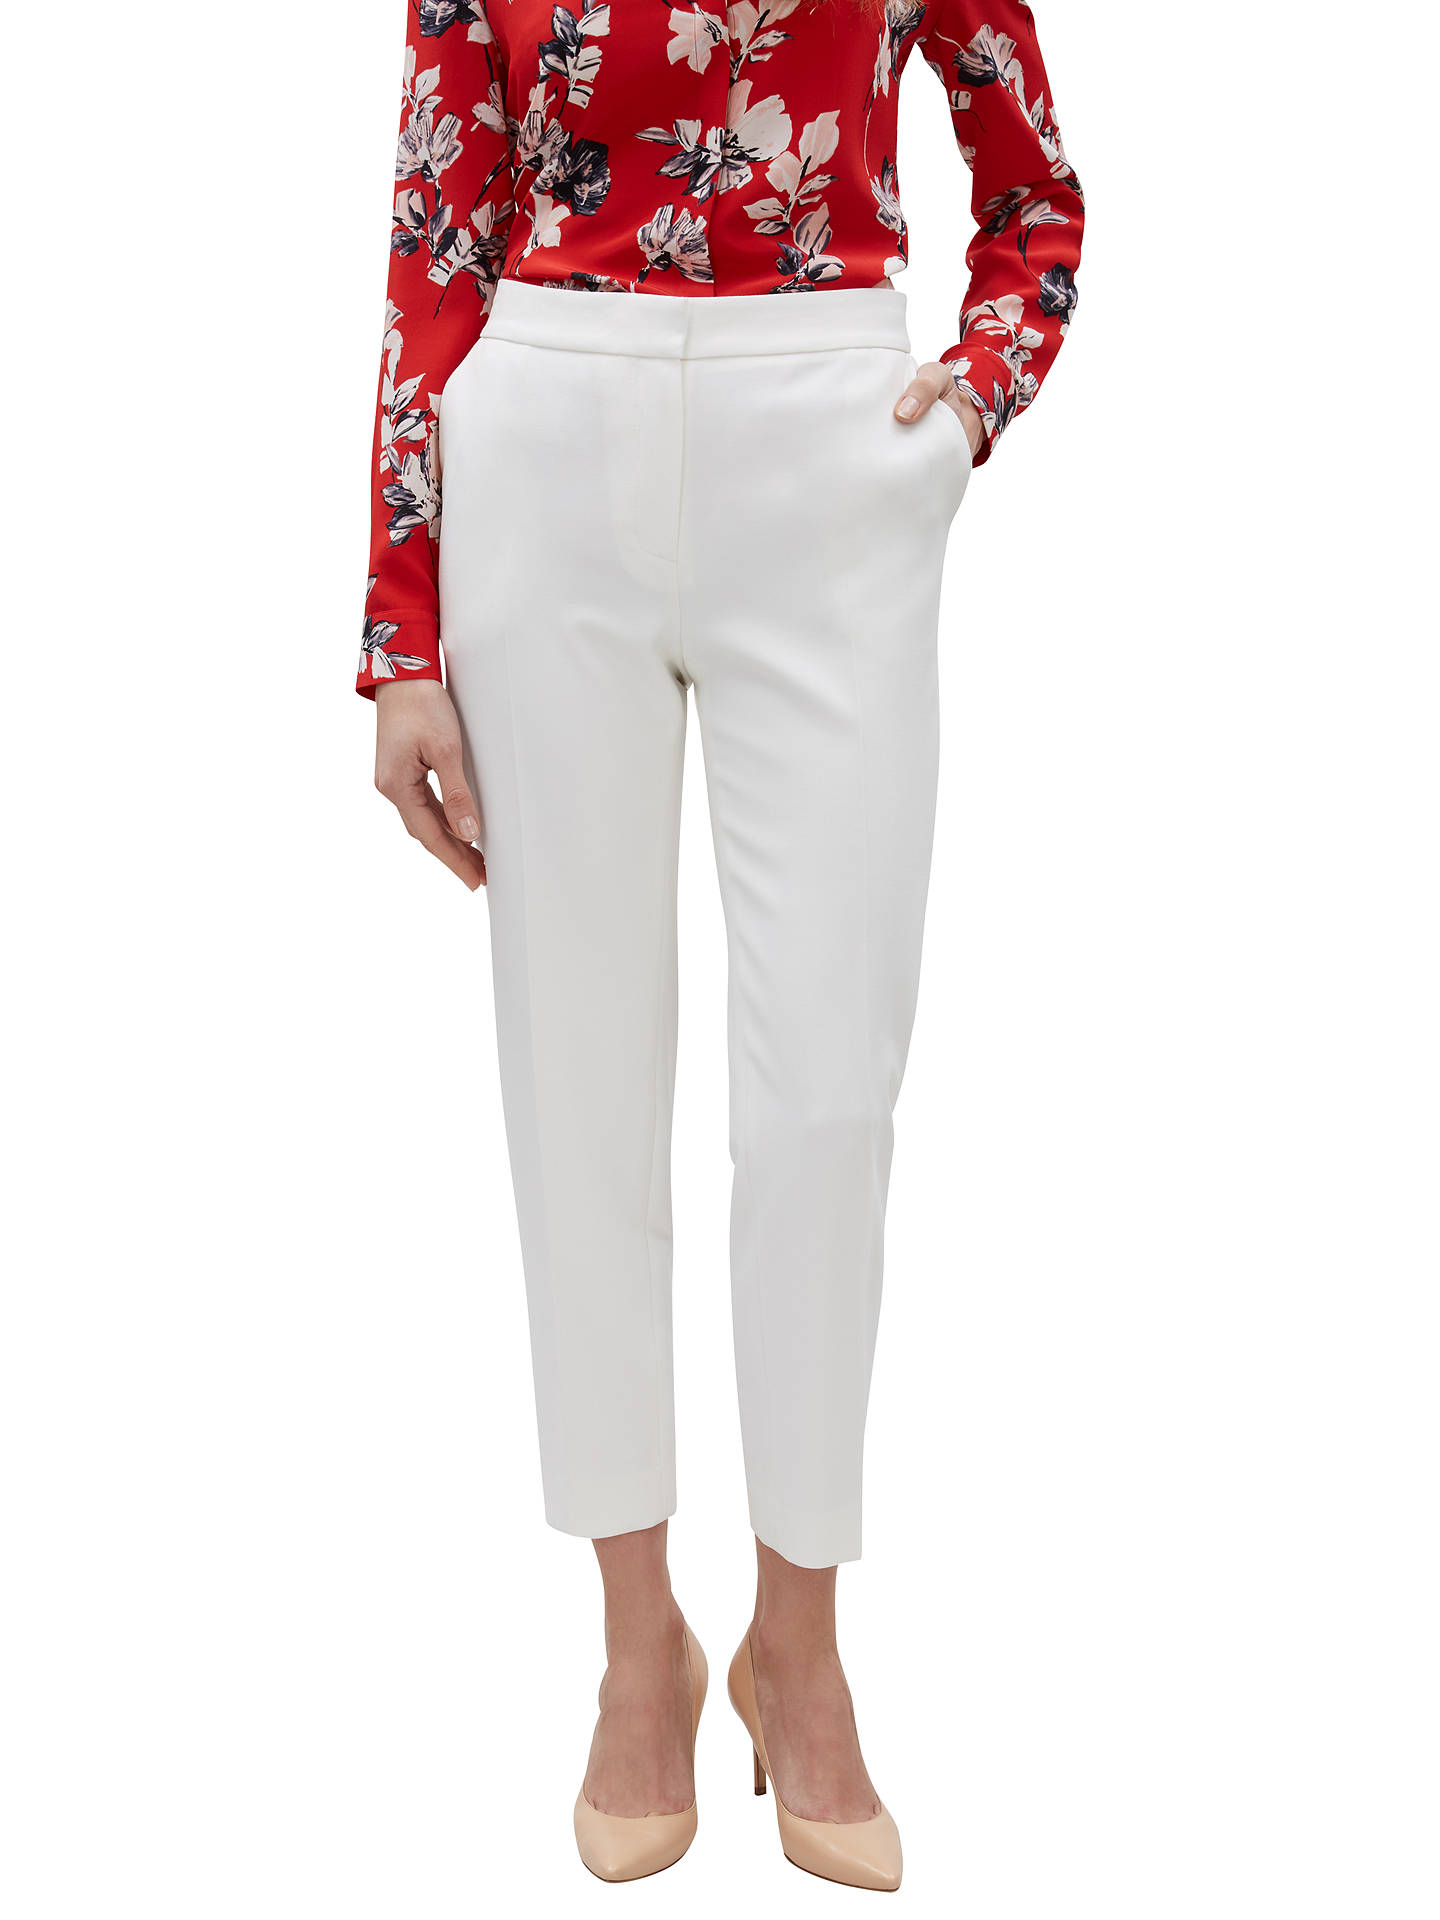 BuyJaeger 7/8 Colette Tapered Trousers, Ivory, 6 Online at johnlewis.com